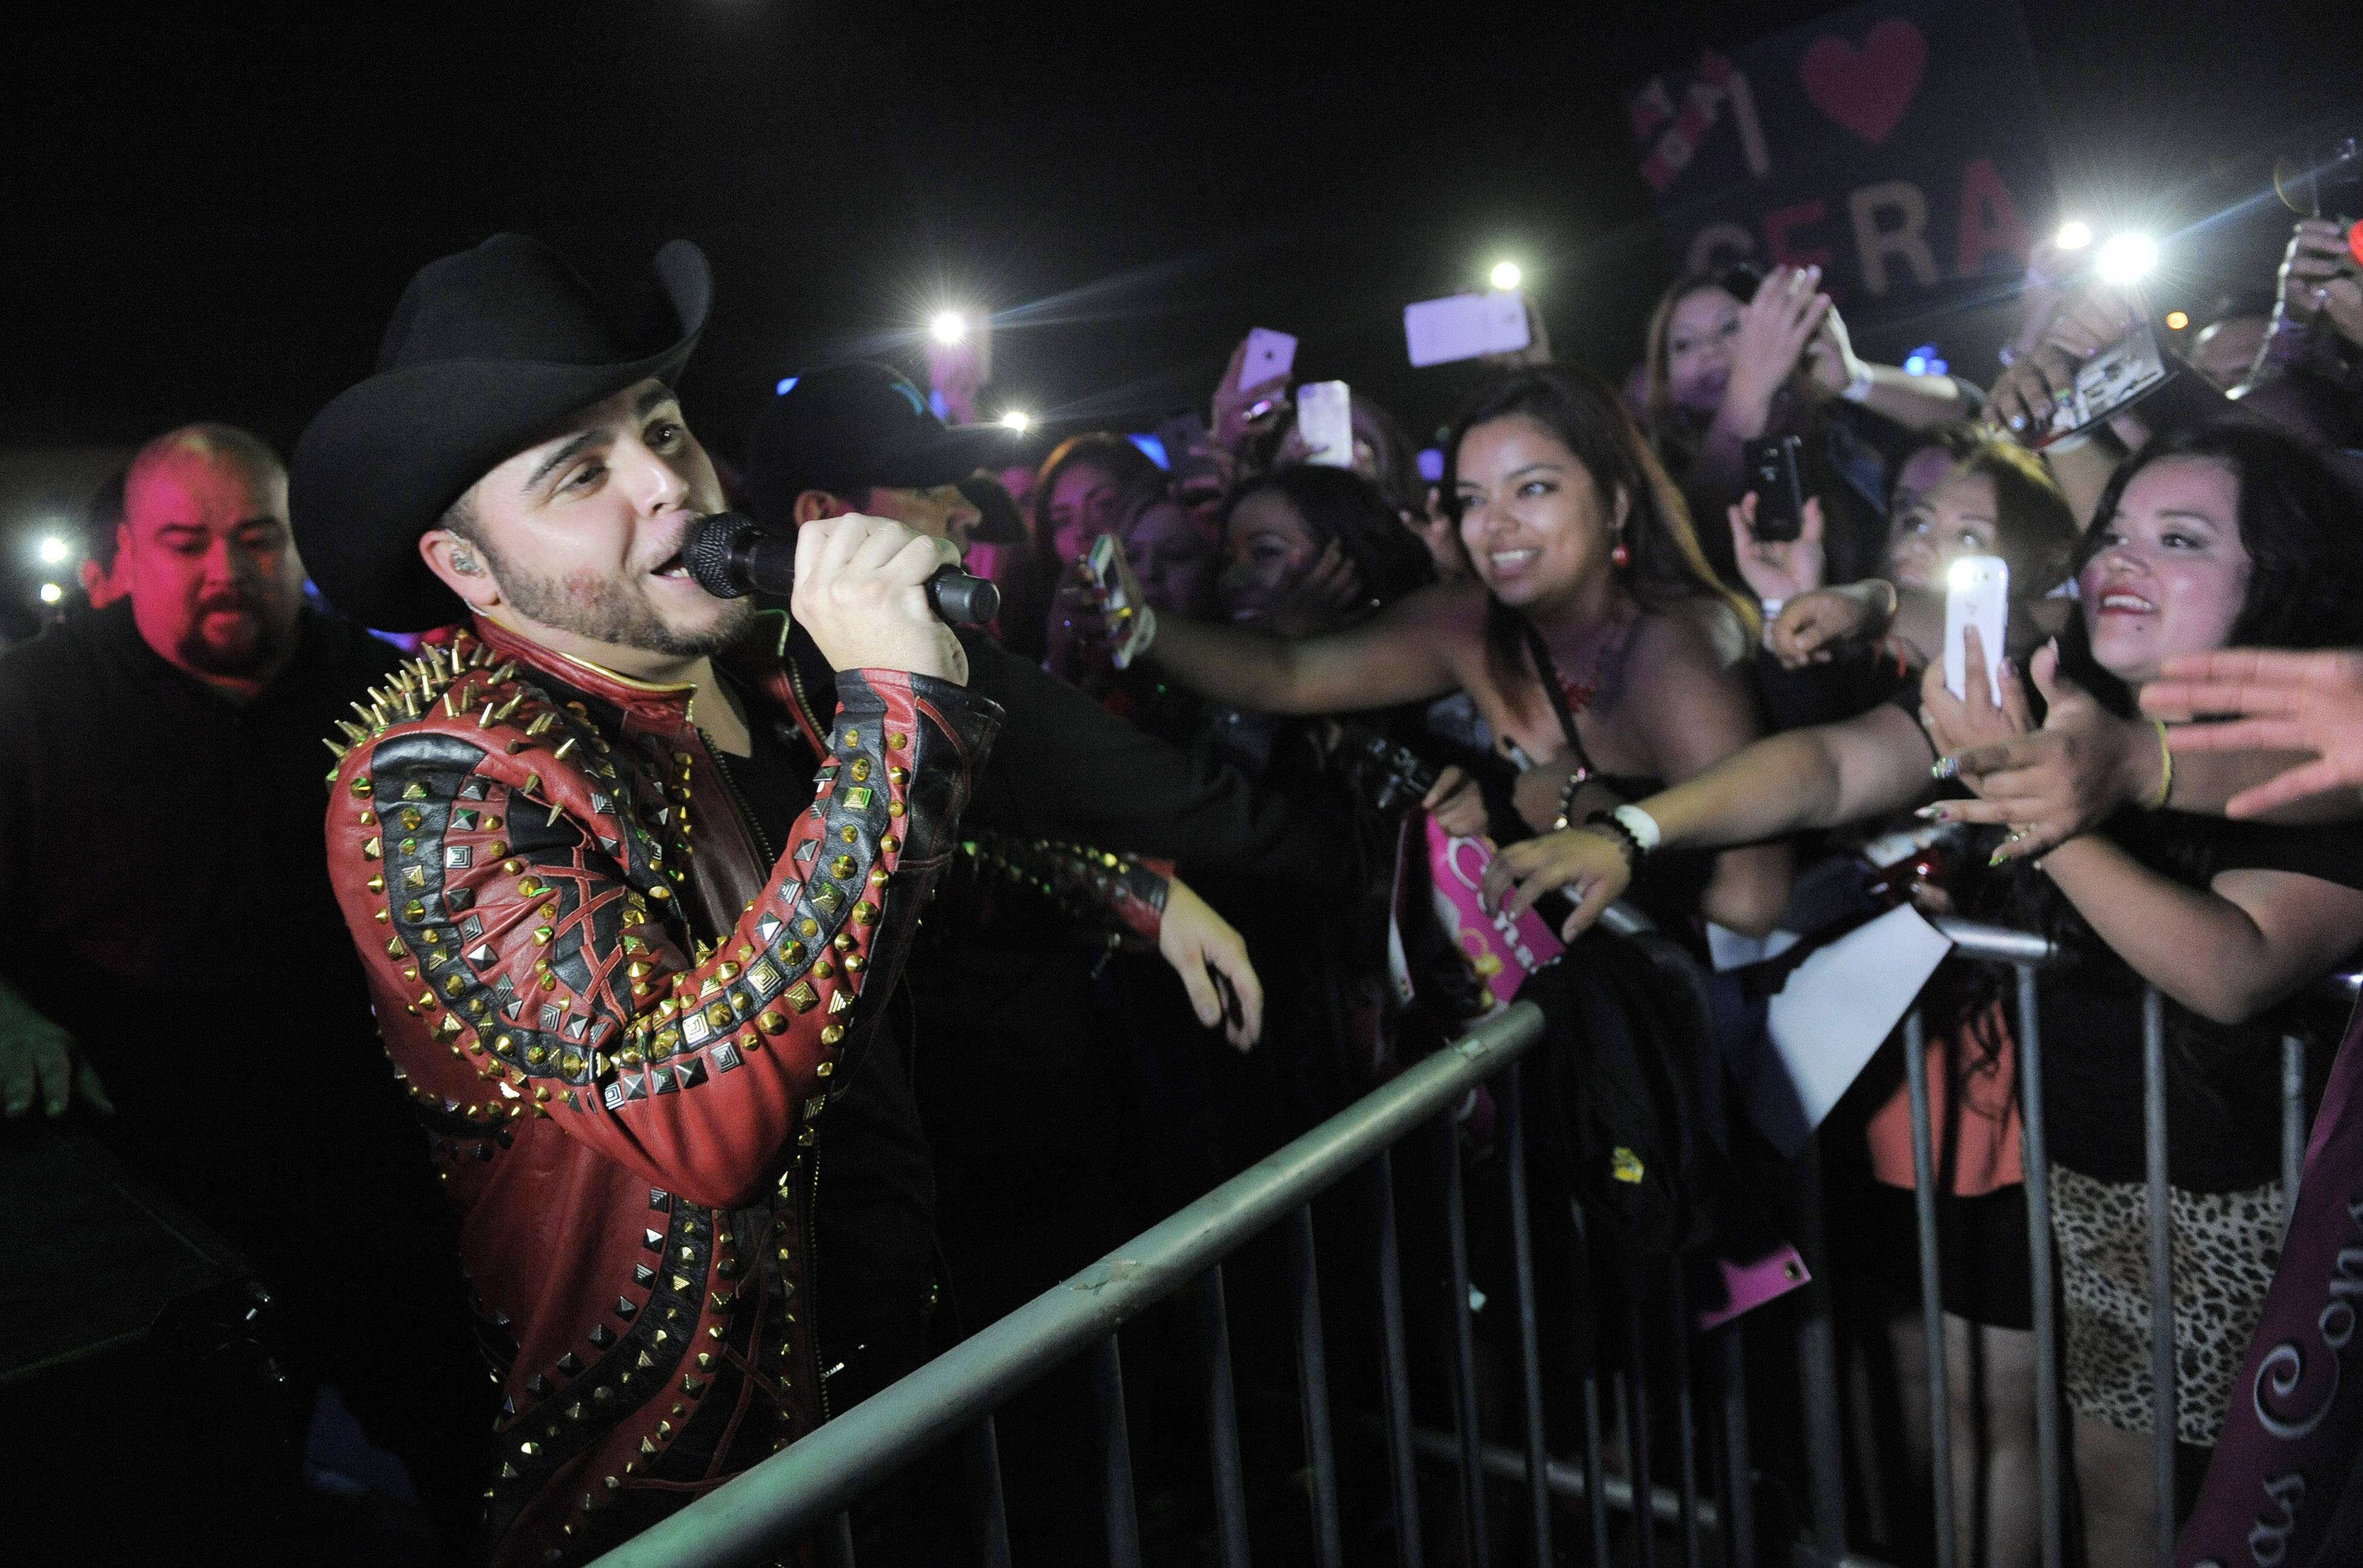 "Gerardo Ortiz performs in front of fans during a concert at the Ventura County Fairgrounds on in Ventura, Calif. Ortiz spent his childhood in the Pacific coast state of Sinaloa, the birthplace of both banda music and many of Mexico's top drug traffickers. But it was upon his return to Southern California that he found fame and fortune after self-promoting his ballads and ""narcocorridos"" on YouTube."